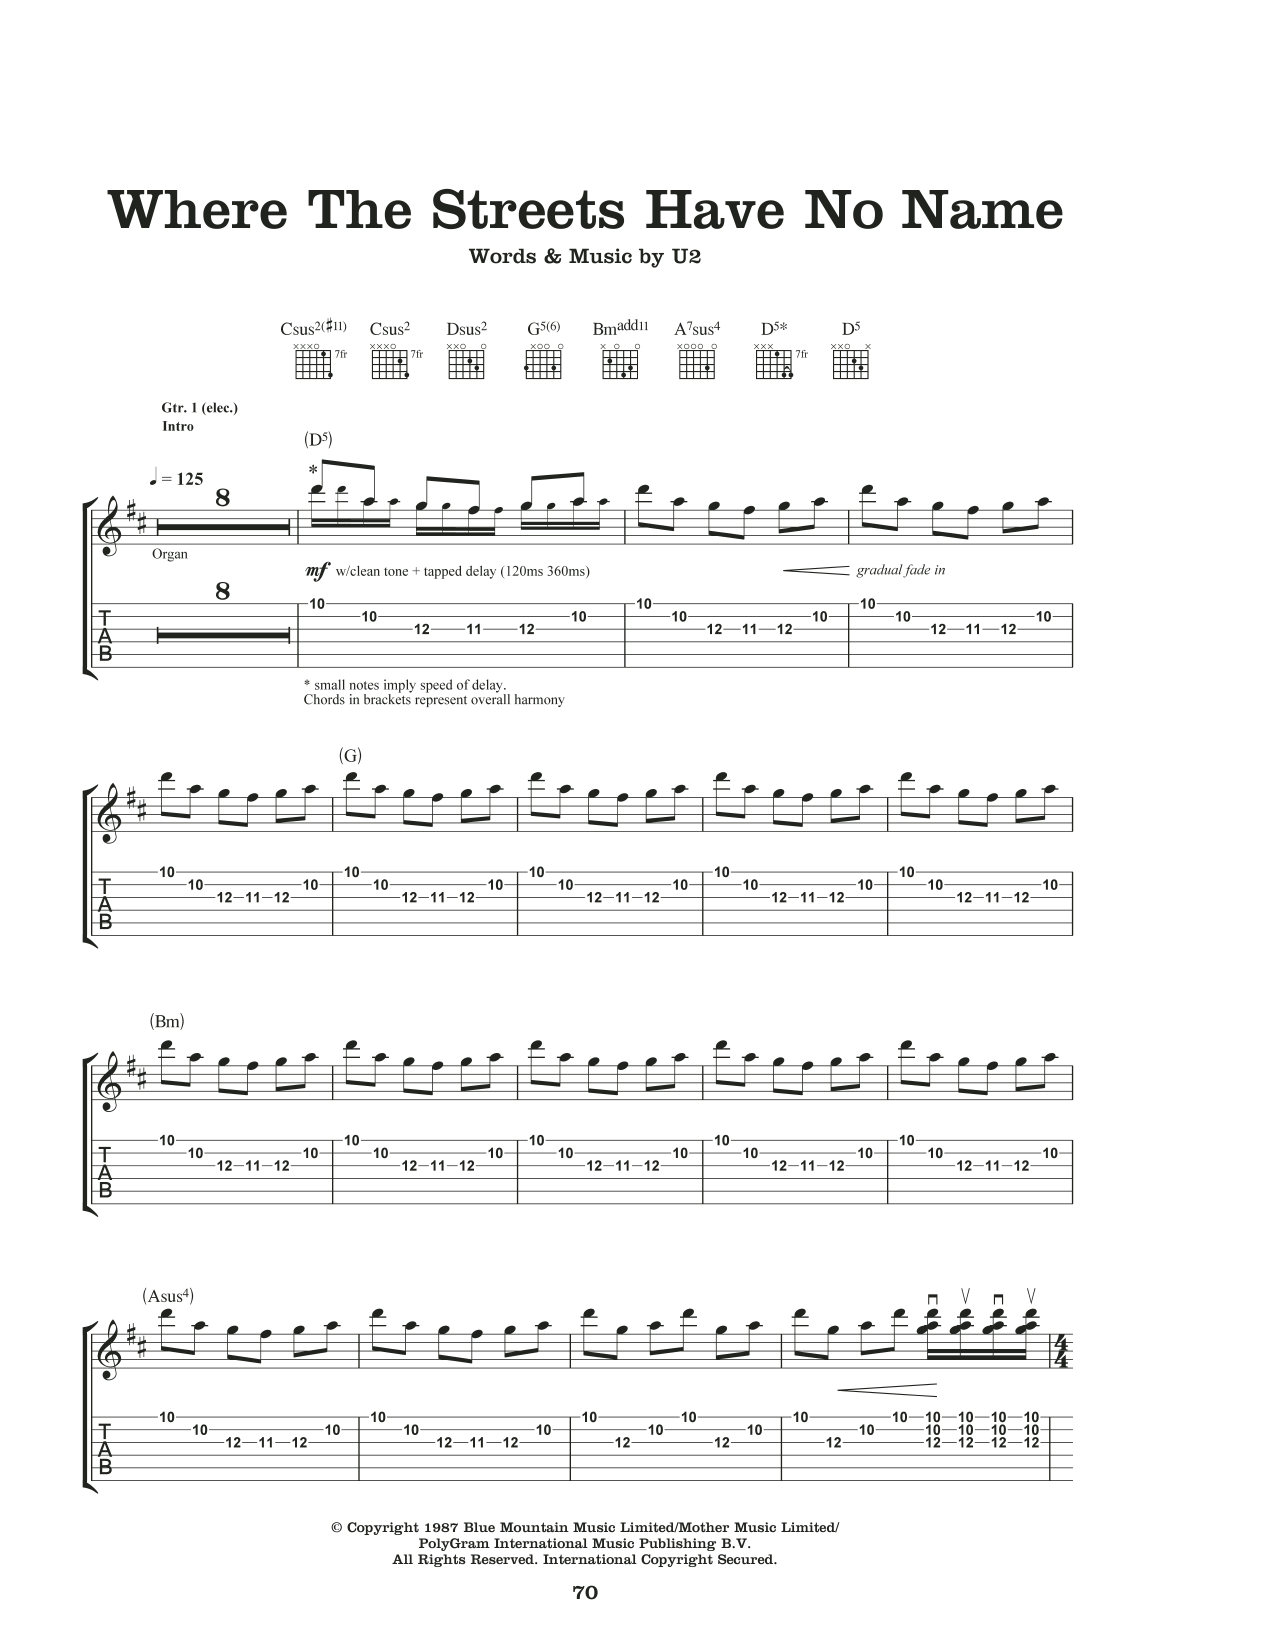 Where The Streets Have No Name Sheet Music